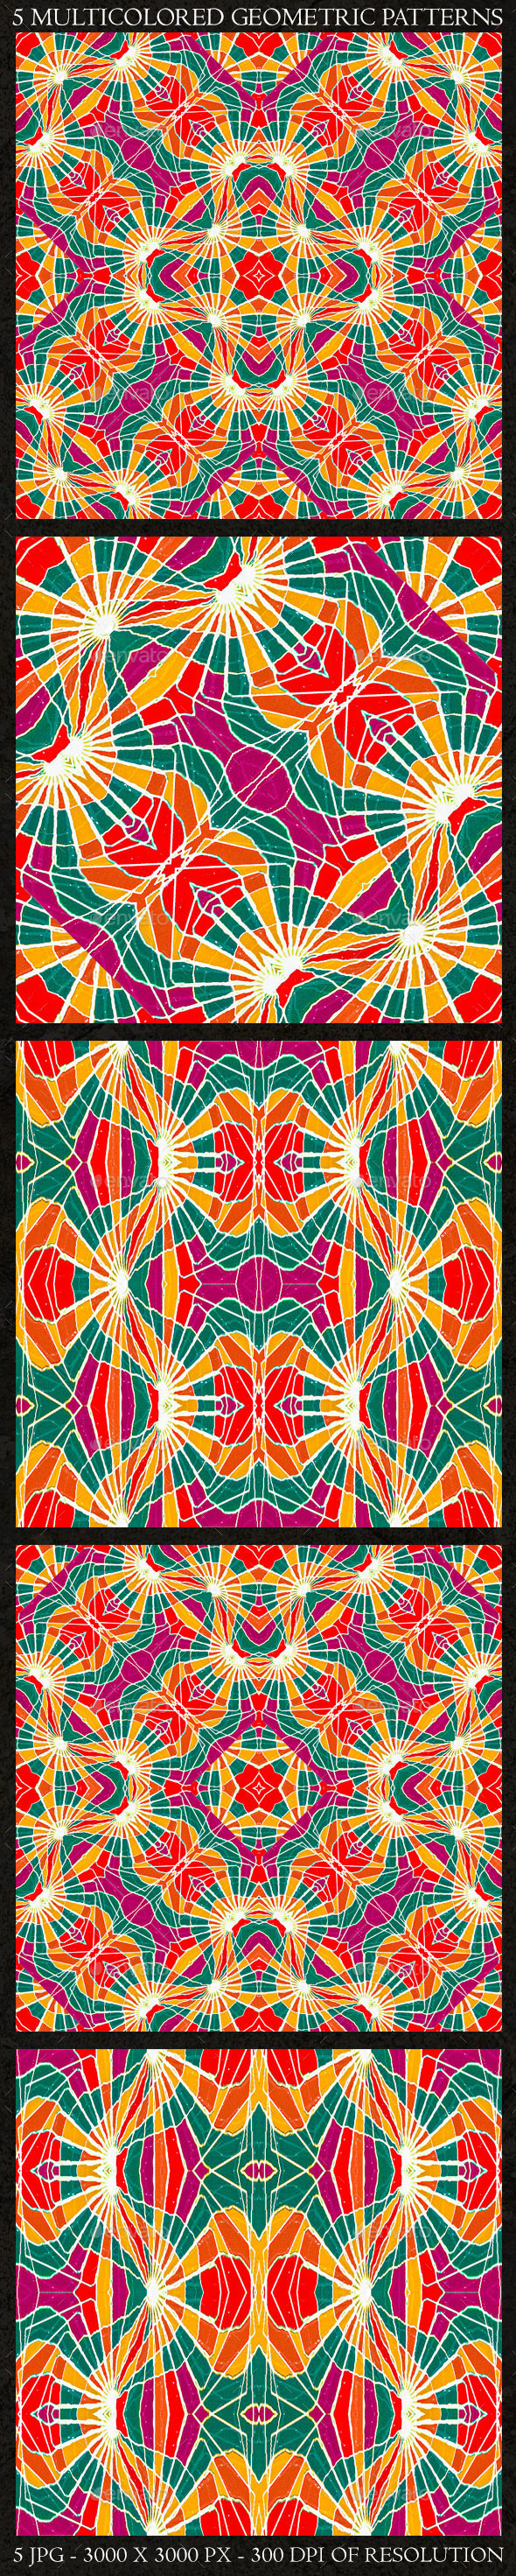 GraphicRiver 5 Multicolored Geometric Patterns 11202212